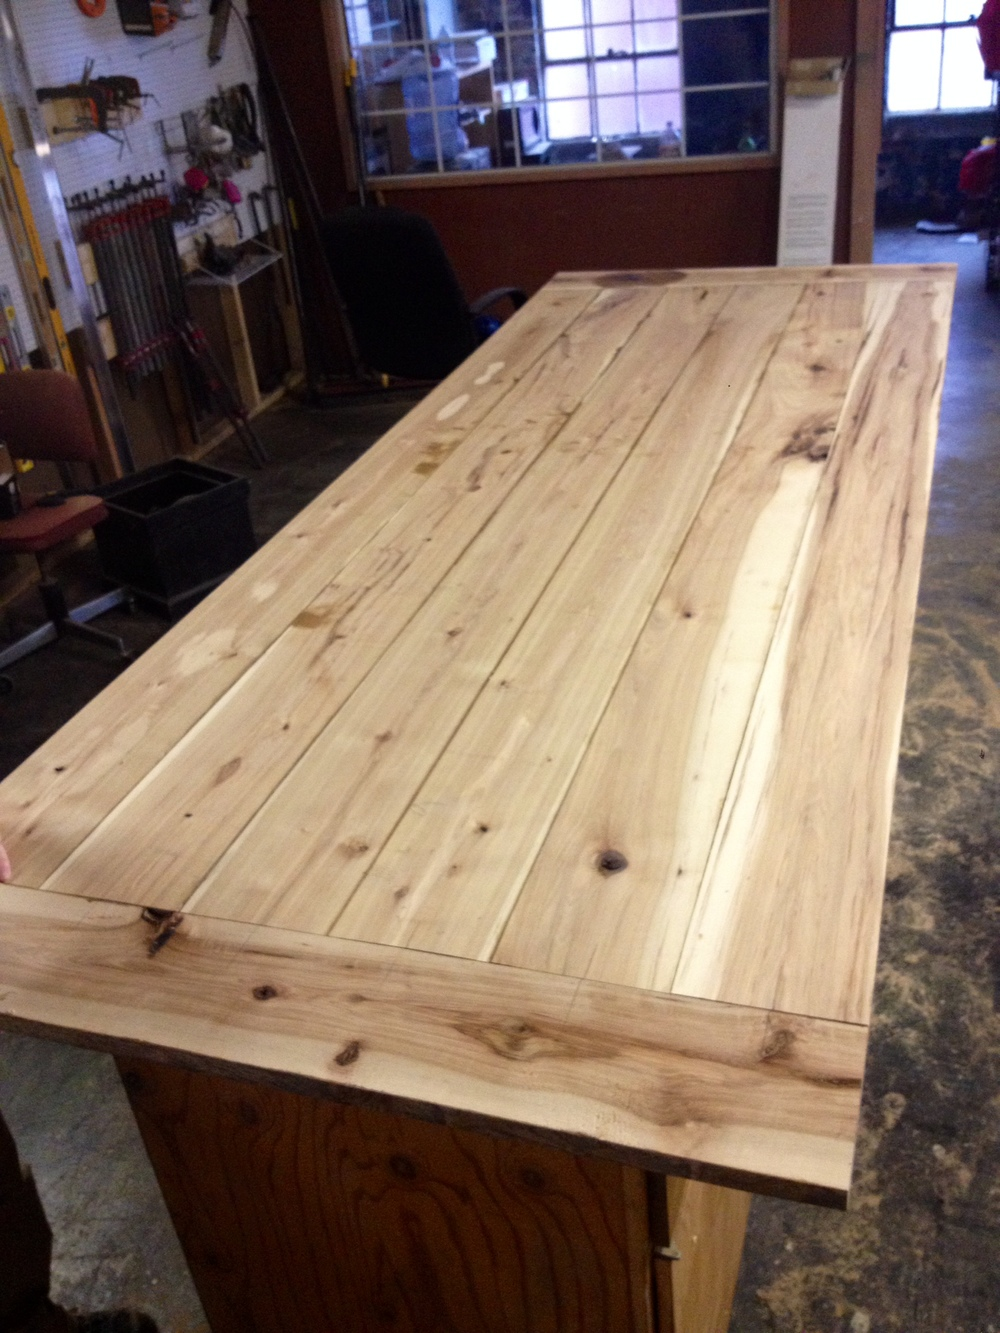 hickory tabletop for custom conference table from Rail Yard Studios